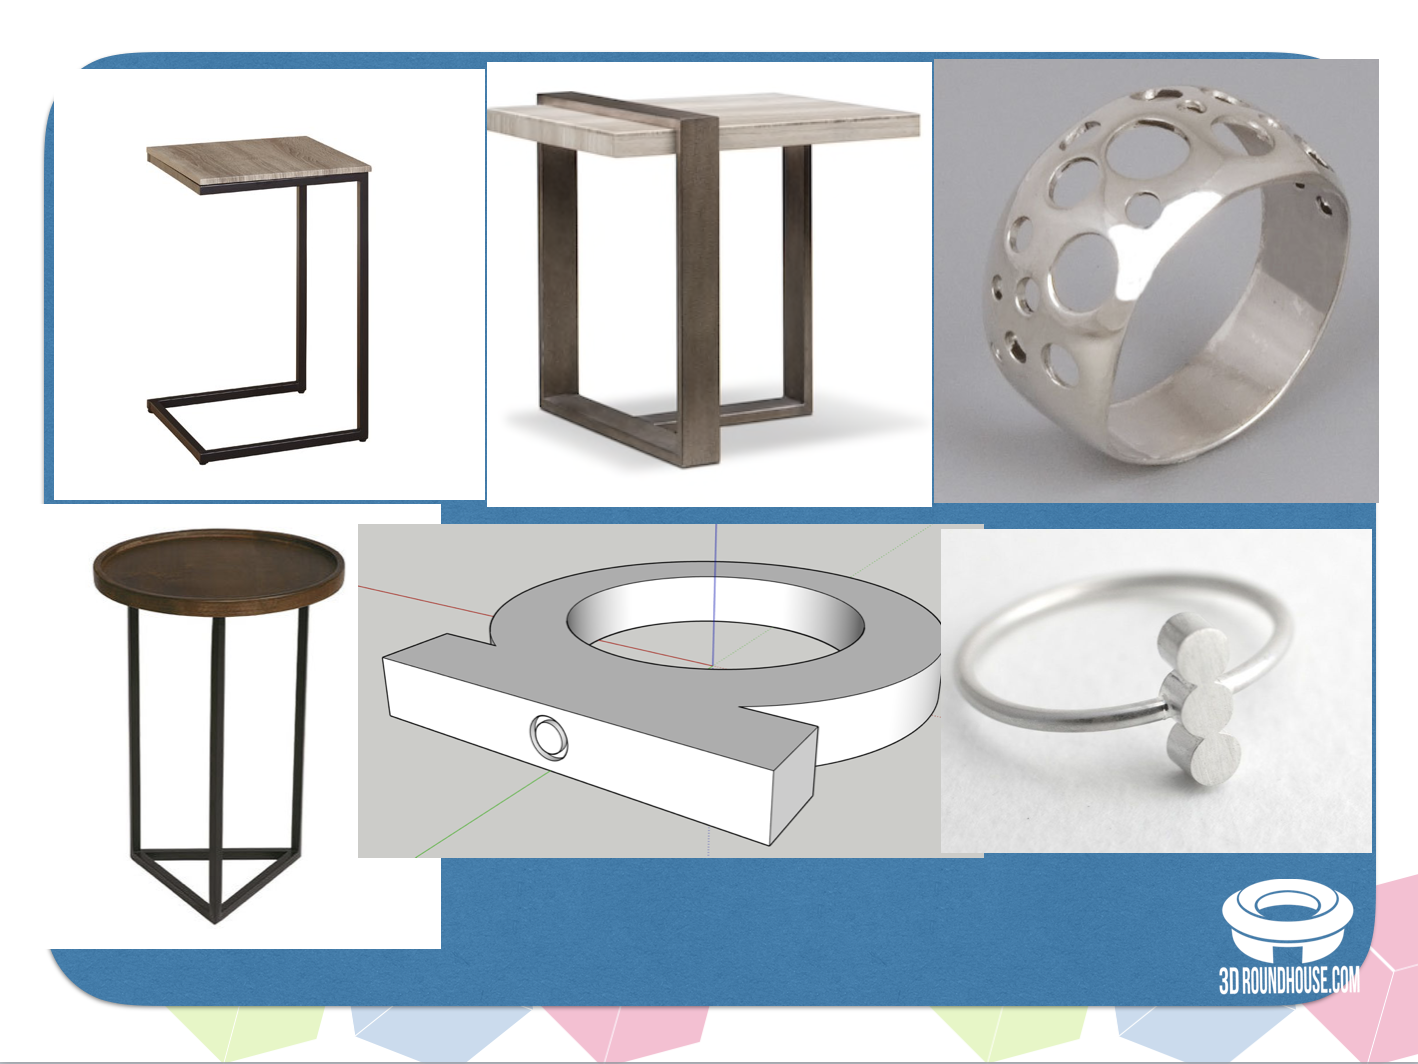 Can you 3D model these objects?